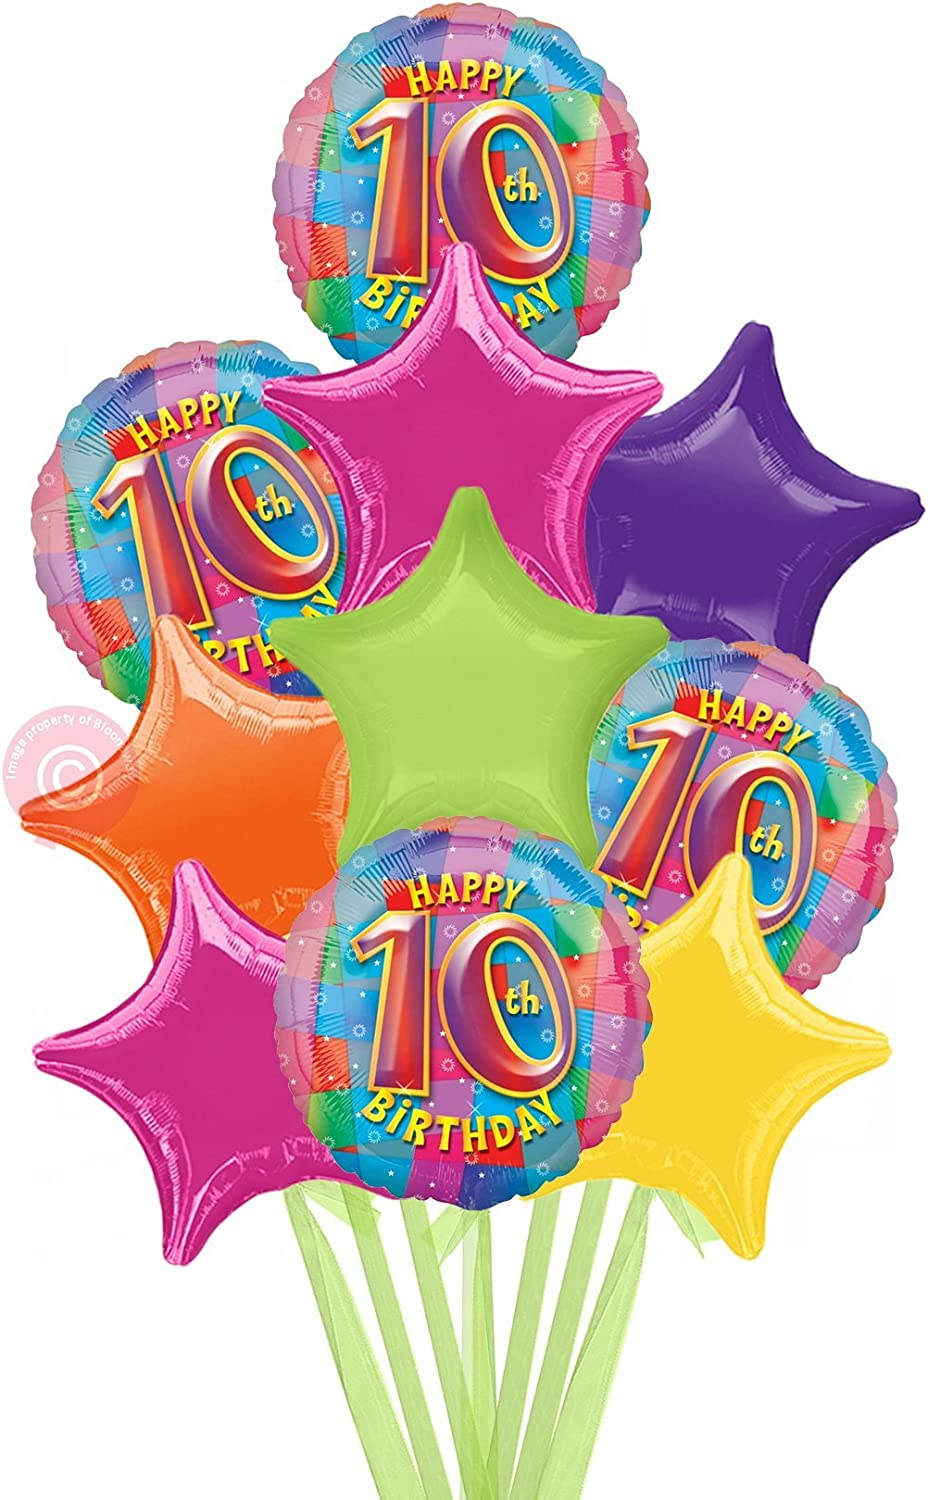 Num 10 Happy Birthday Girl  Inflated Birthday Helium Balloon Delivered in a Box  Biggest Bouquet  10 Balloons  Bloonaway